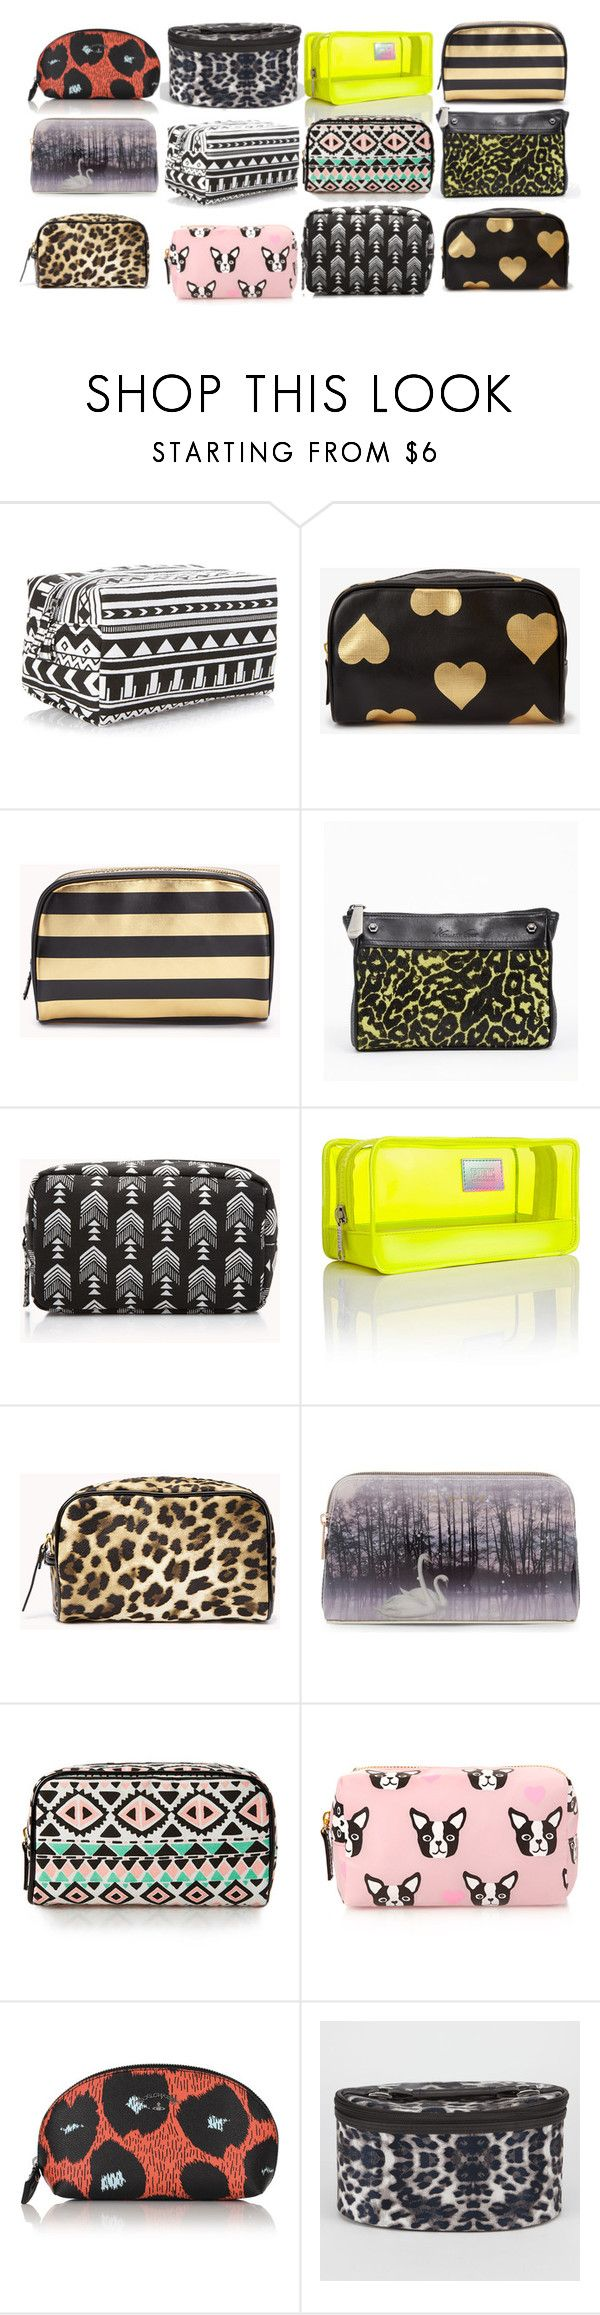 Aria Montgomery inspired makeup bags by xzozebo on Polyvore featuring Kenneth Cole, Victoria's Secret, Forever 21, Ted Baker and Vivienne Westwood